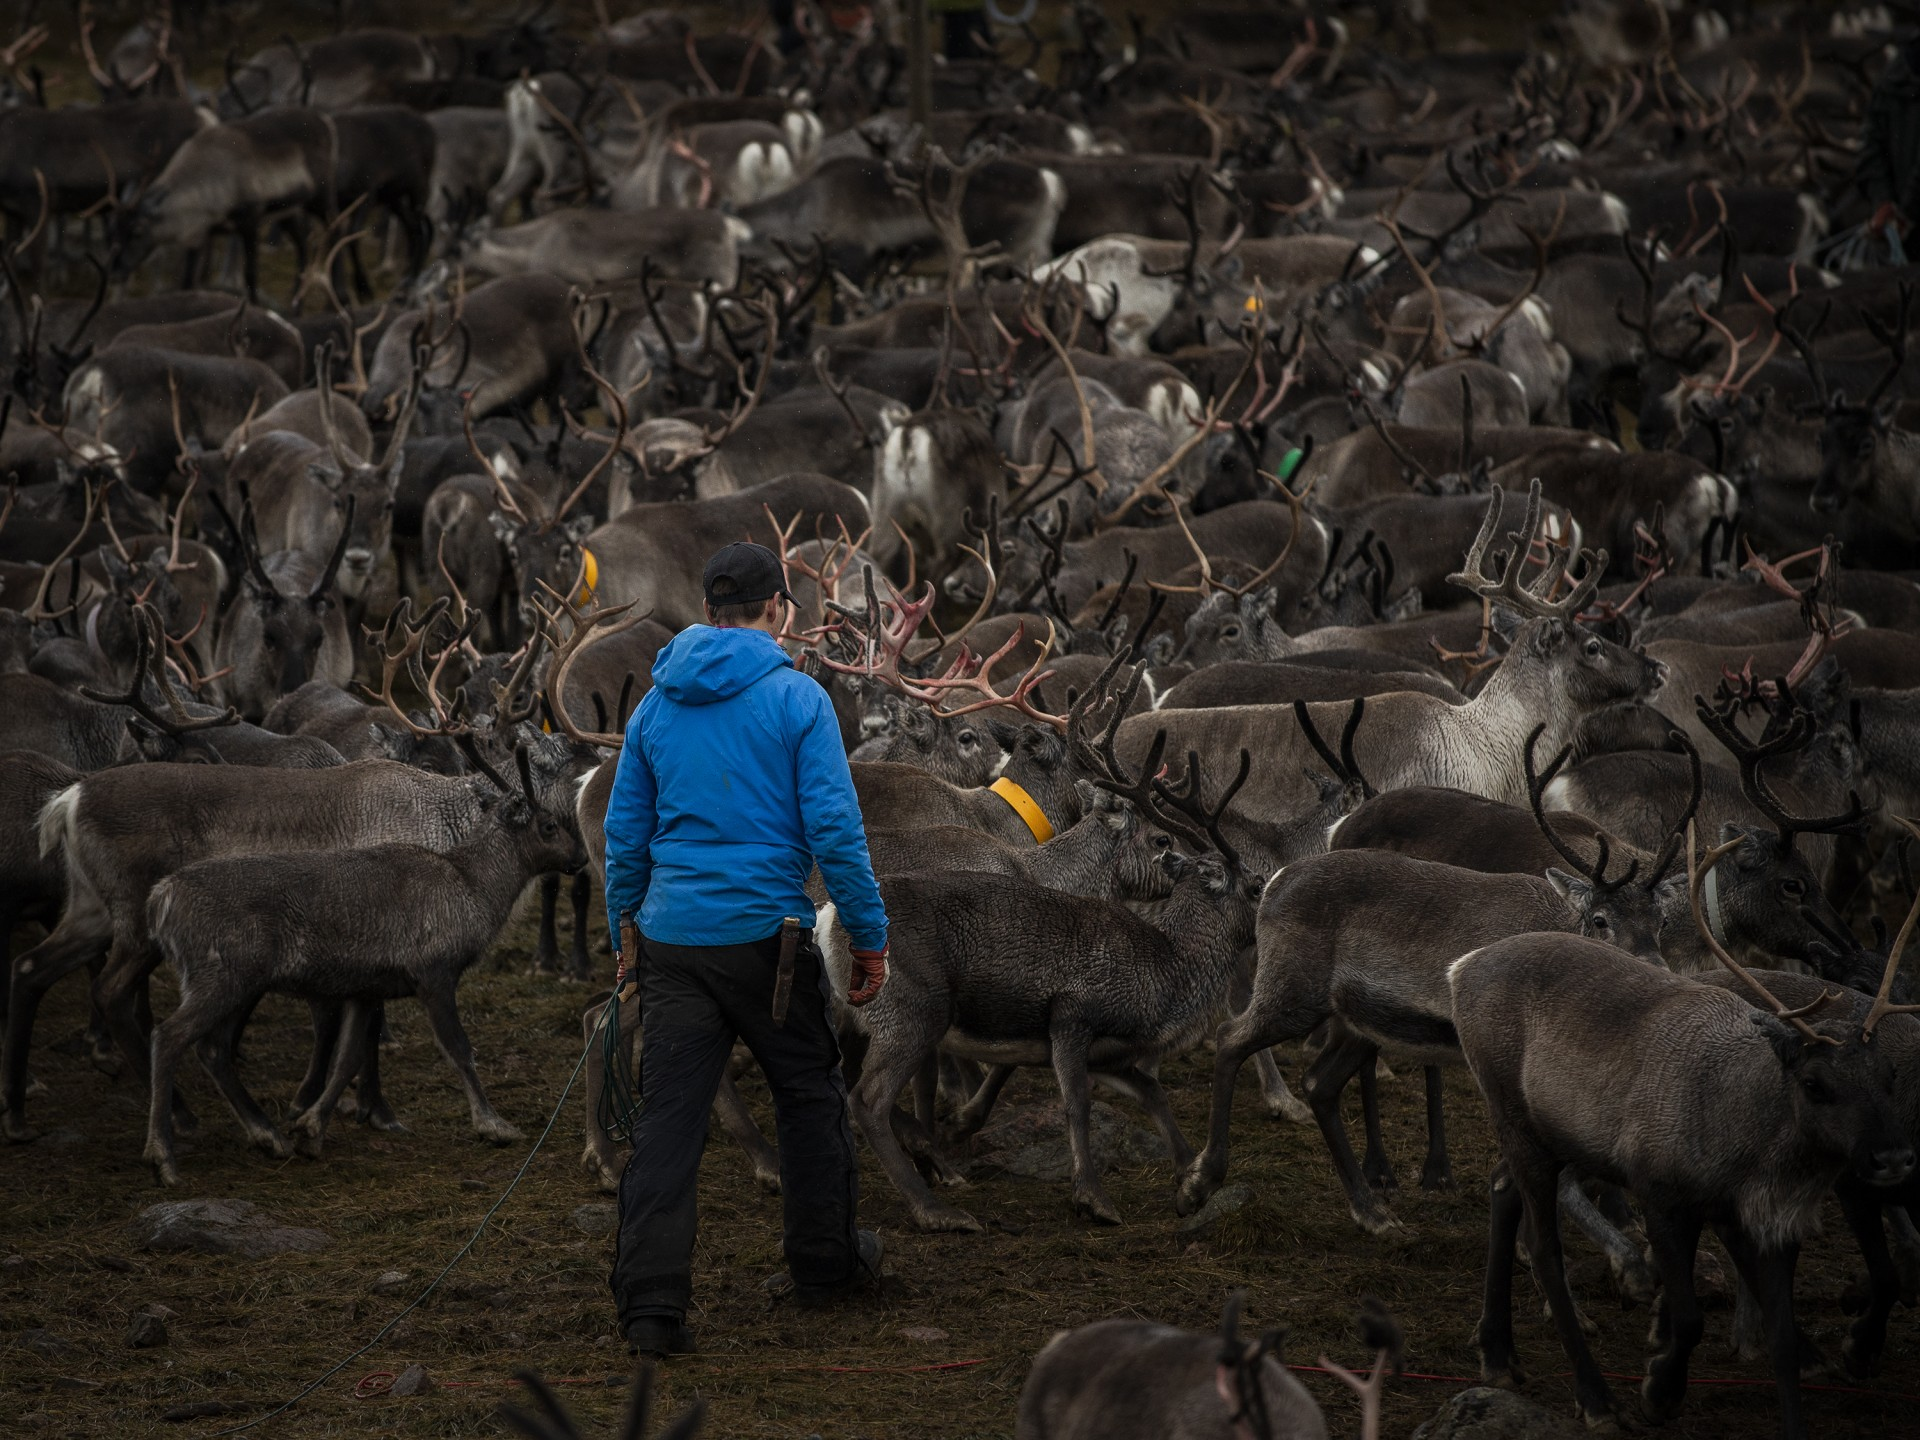 Reindeers and a man in a blue jacket.